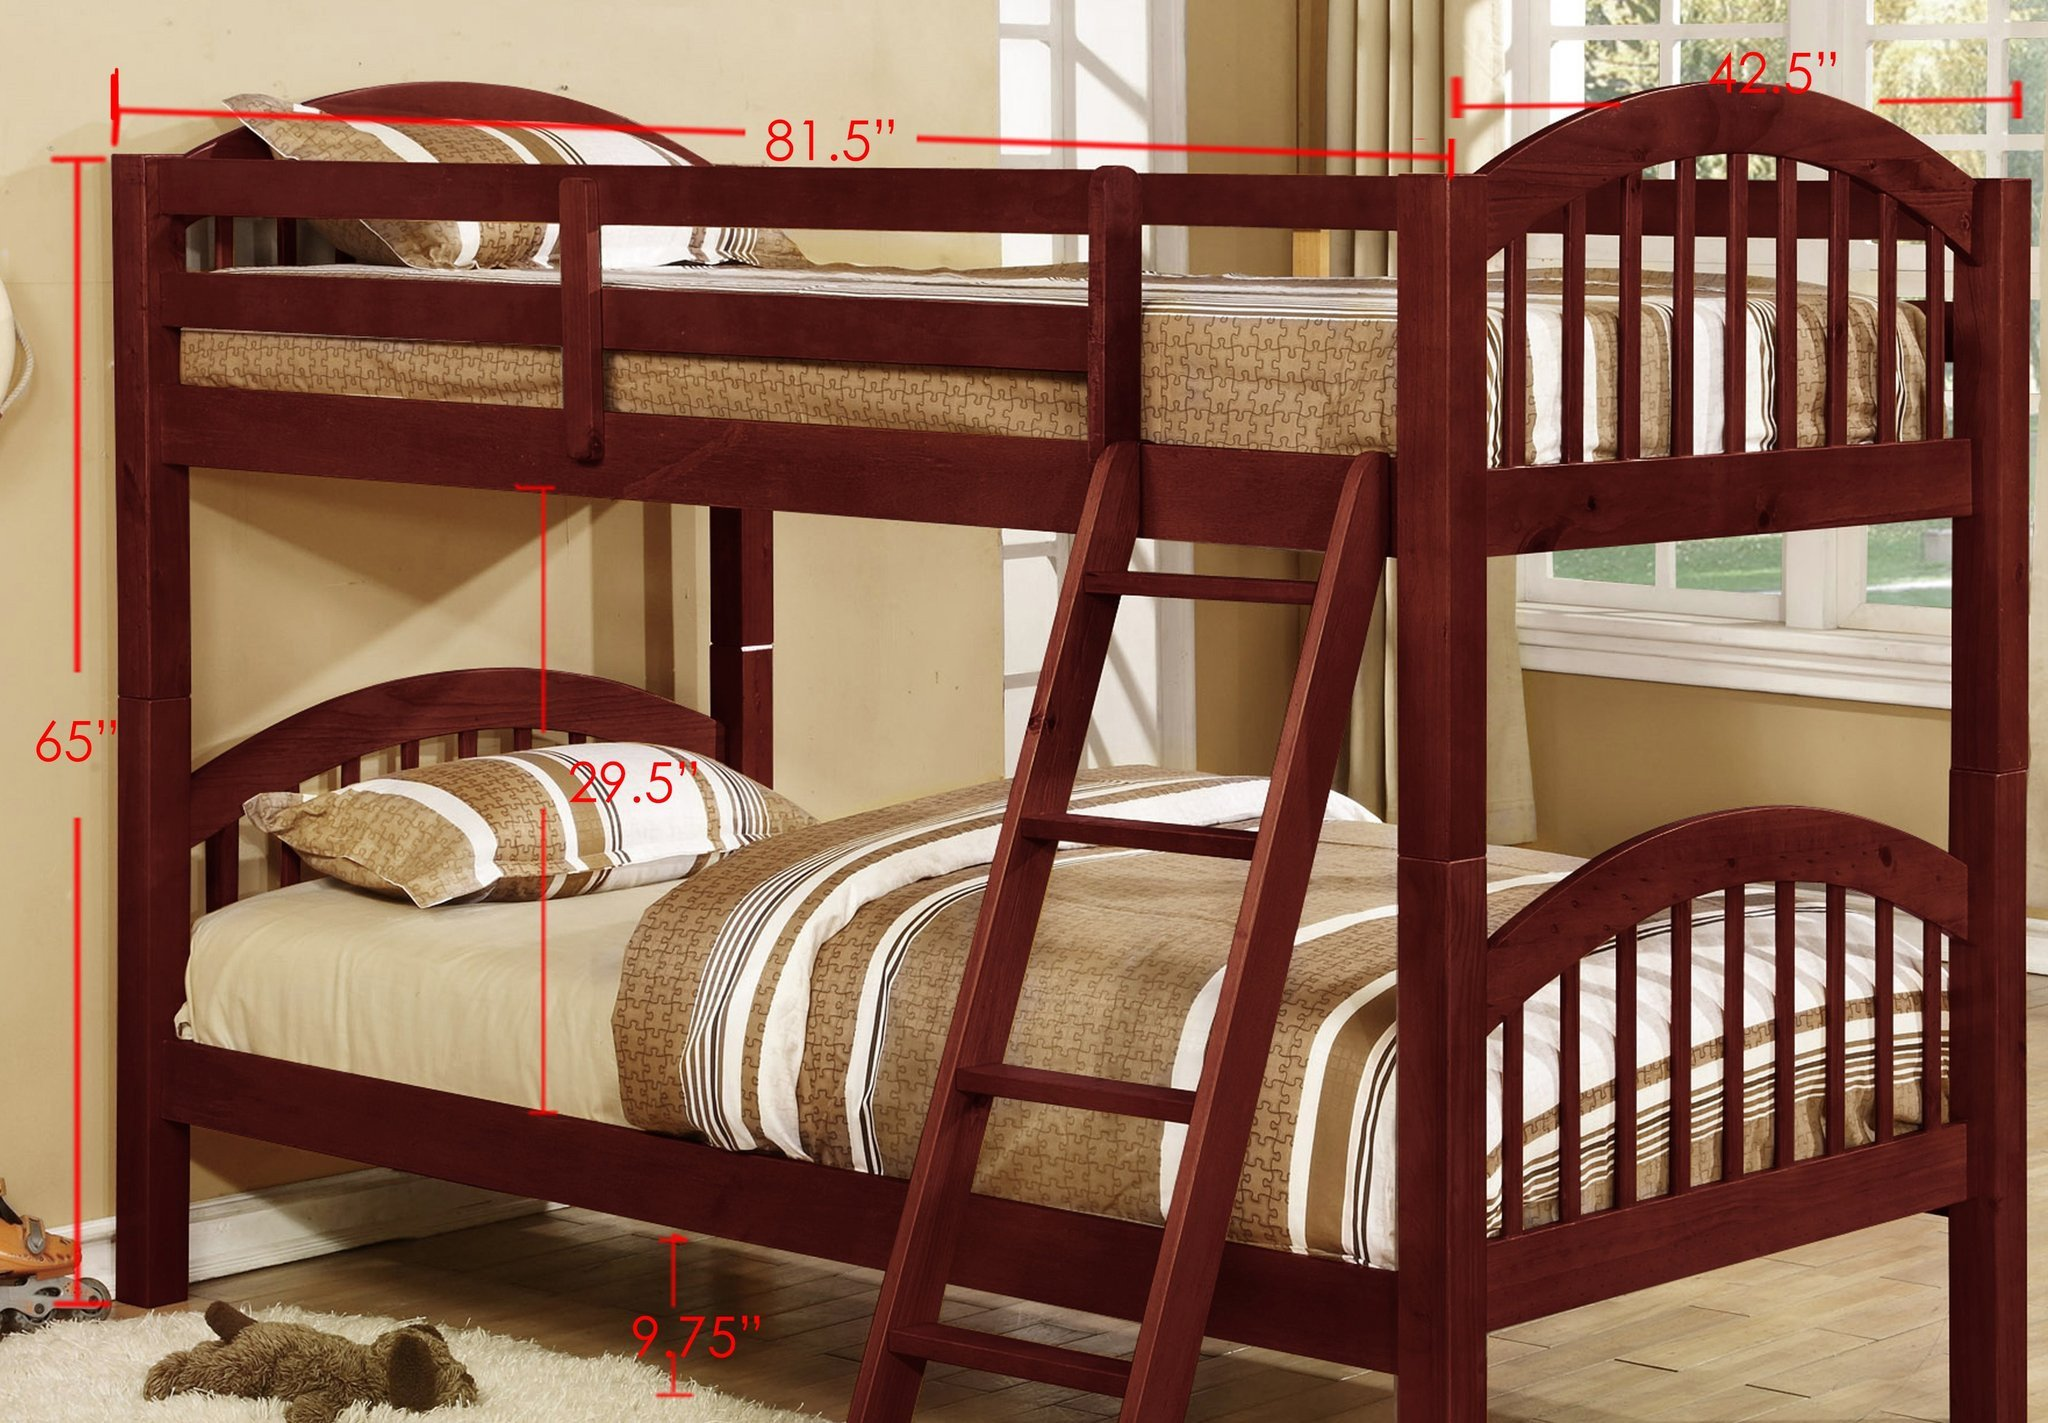 Solid Cherry Wood Bedroom Furniture Unique Beth Bunk Bed Twin Over Twin Cherry Wood Arched Headboard